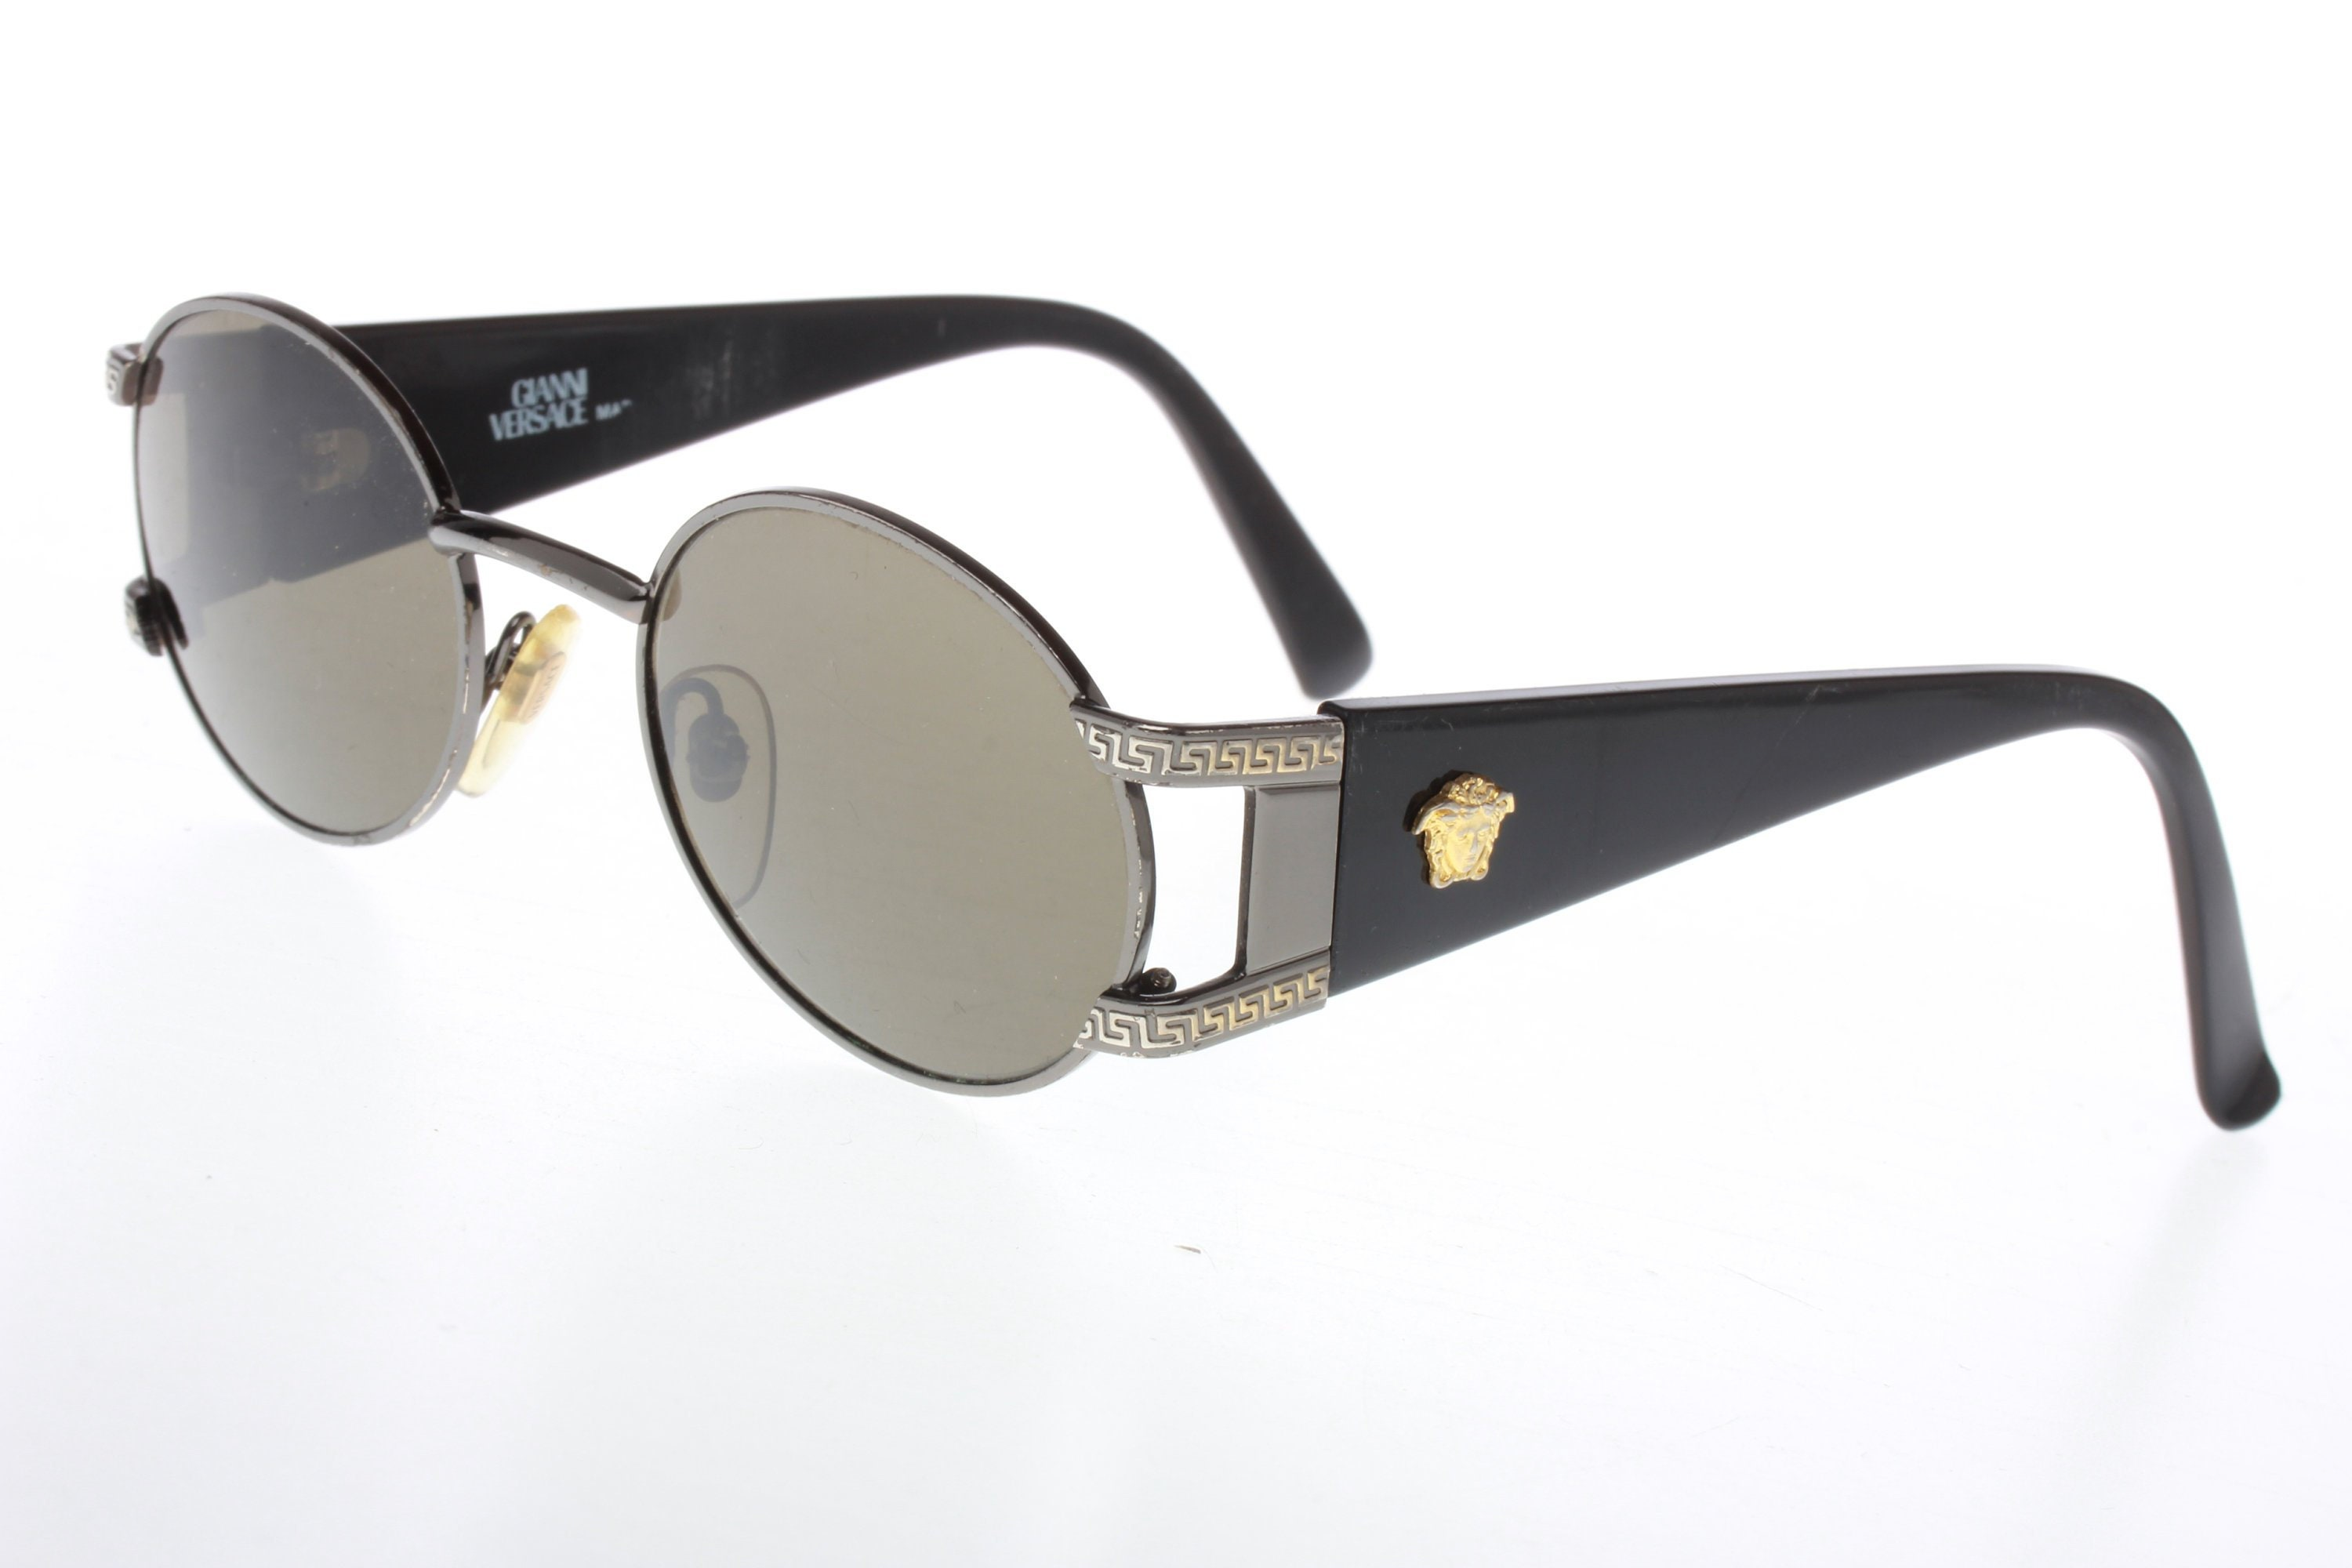 2614ba9d1f9 Gianni Versace S-60 vintage sunglasses gunmetal frames with